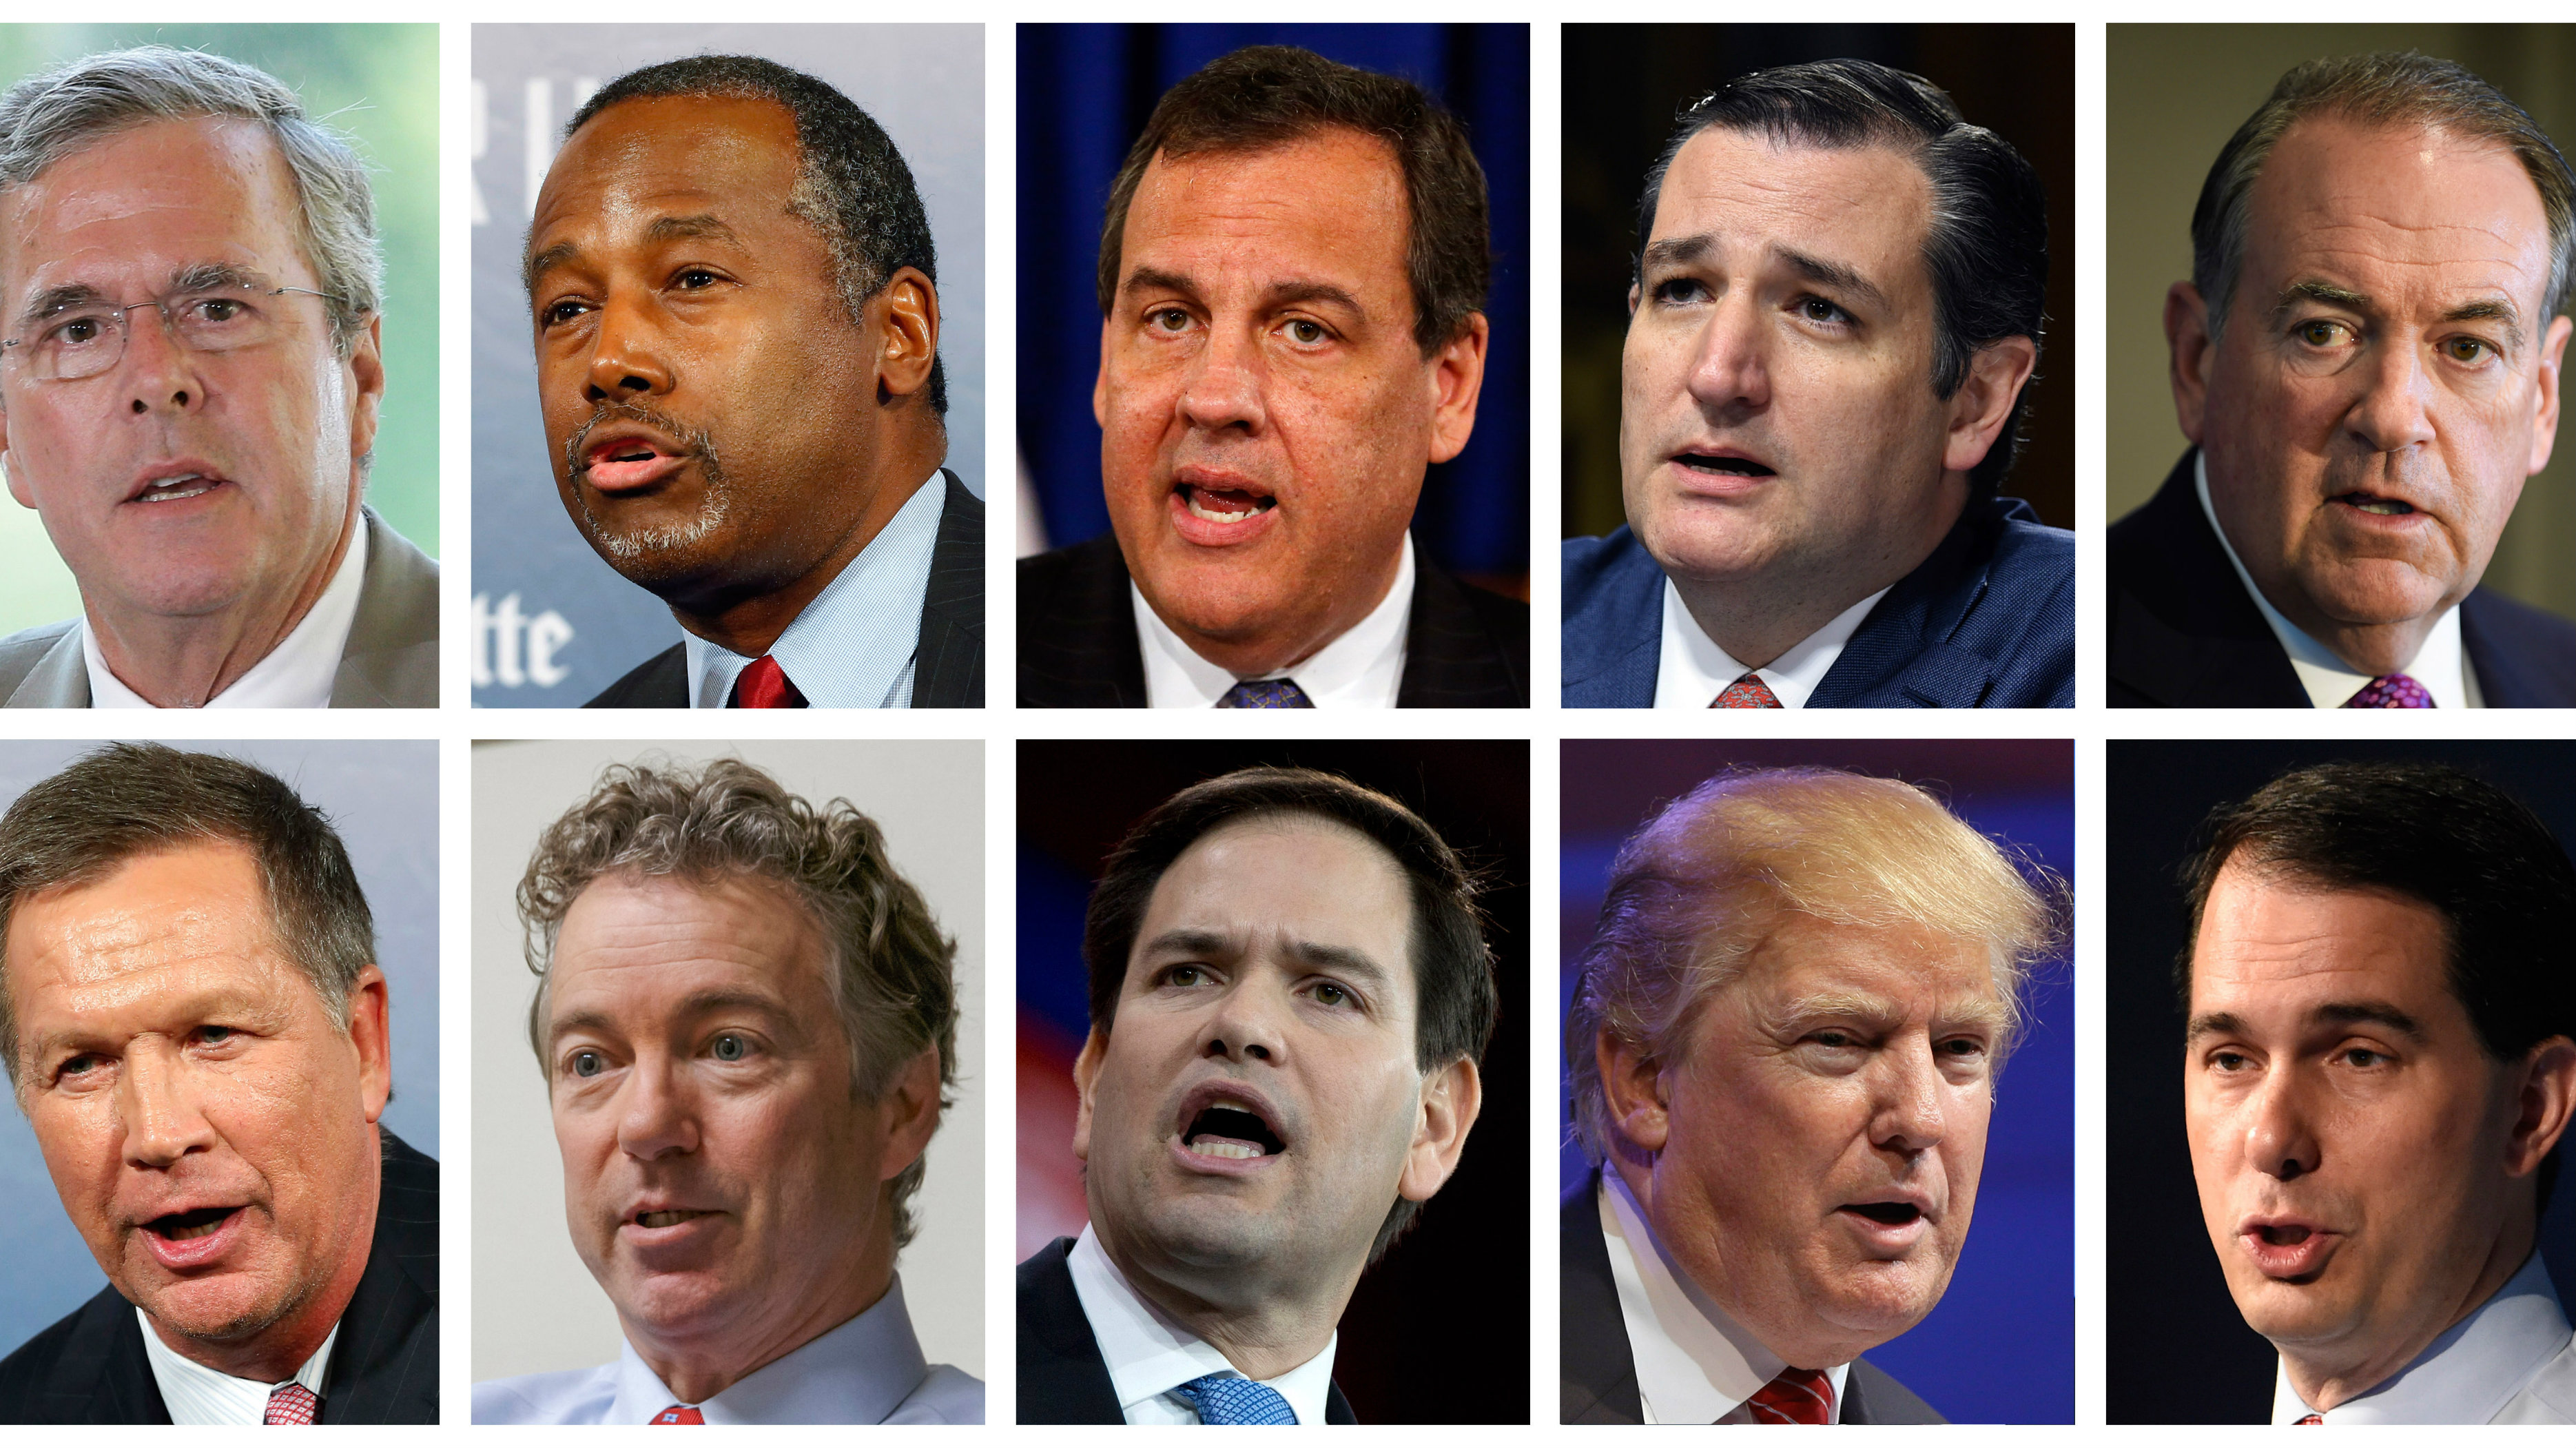 This combination of photos, from top left, shows Republican presidential candidates Jeb Bush, Ben Carson, Chris Christie, Ted Cruz, Mike Huckabee and from bottom left, John Kasich, Rand Paul, Marco Rubio, Donald Trump and Scott Walker. The candidates are scheduled to participate in a Fox News Channel Republican presidential debate on Thursday, Aug. 6, 2015. (AP Photos/File)